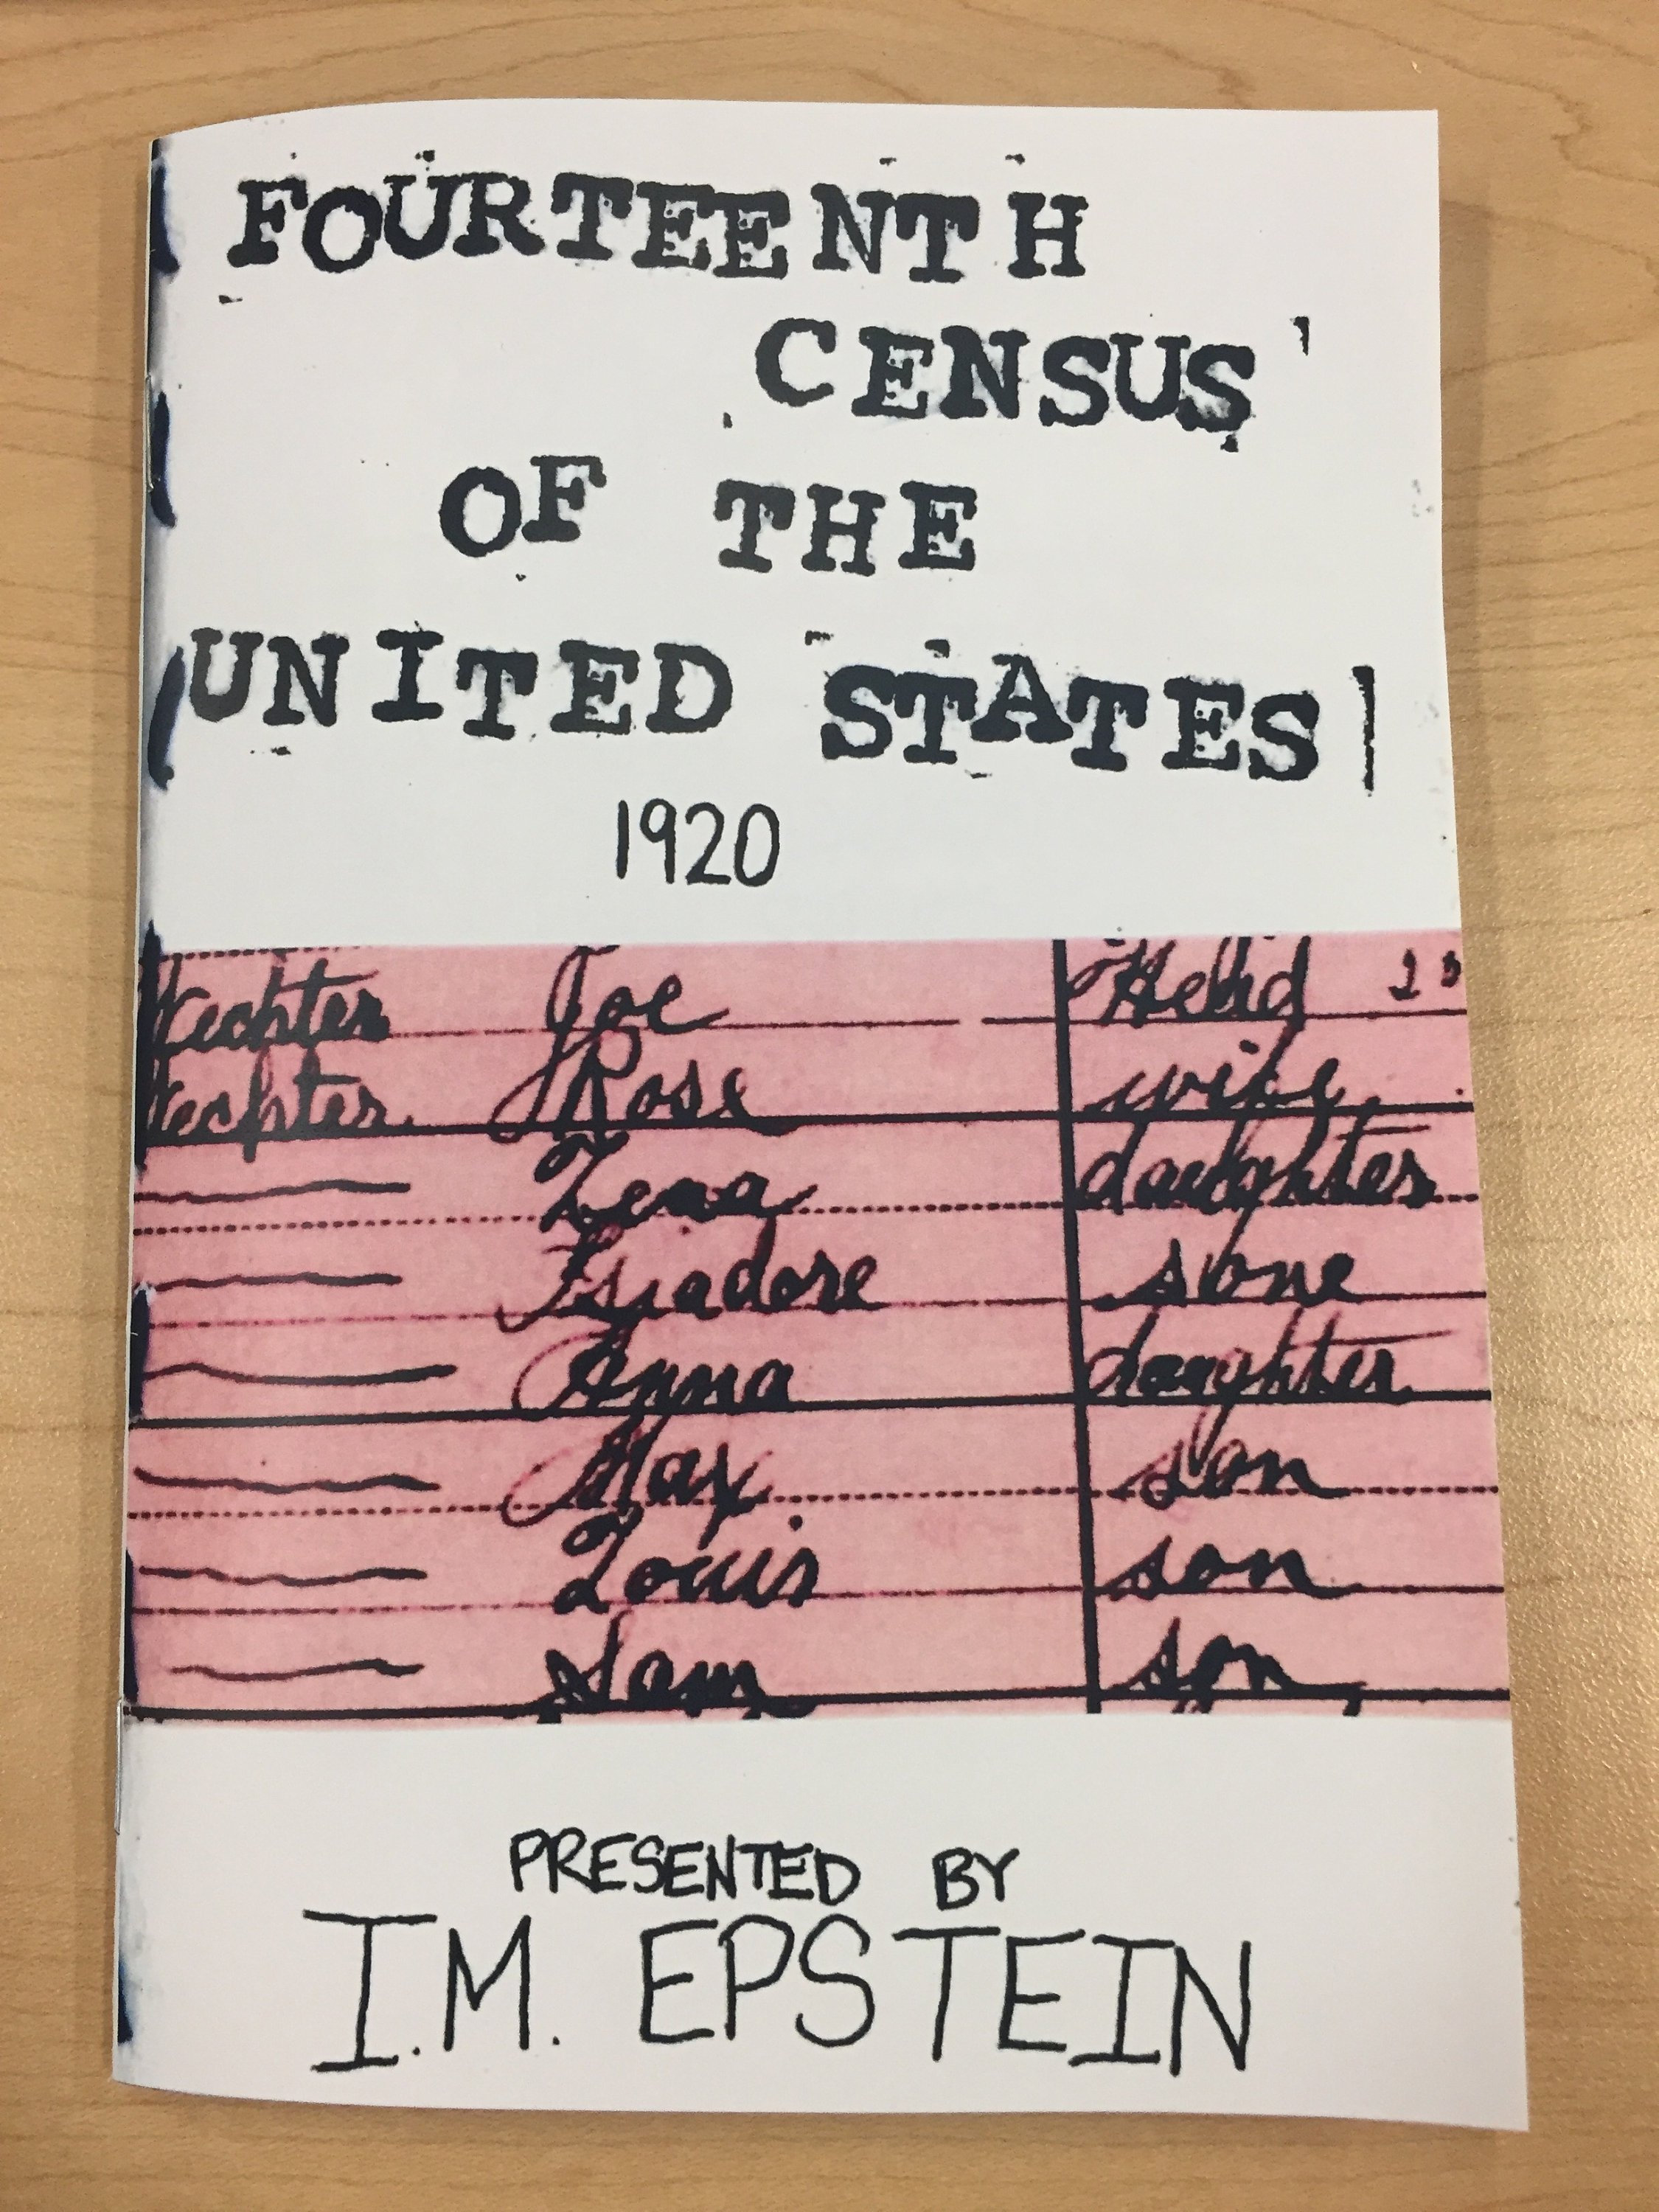 cover: Fourteenth Census of the United States 1920 zine